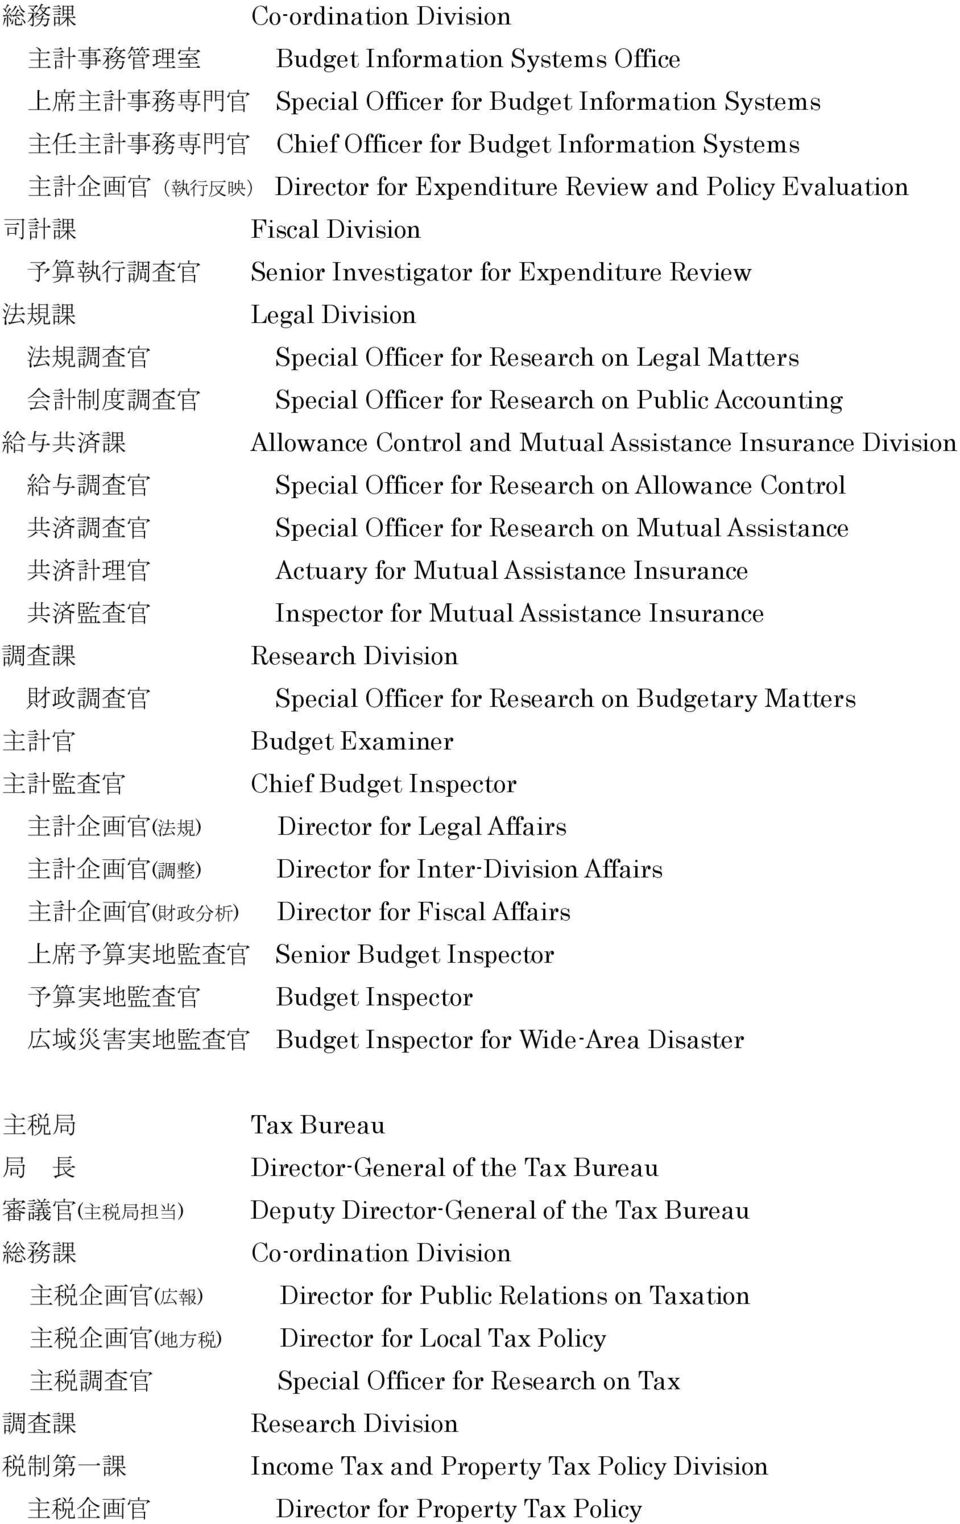 Legal Matters 会 計 制 度 調 査 官 Special Officer for Research on Public Accounting 給 与 共 済 課 Allowance Control and Mutual Assistance Insurance Division 給 与 調 査 官 Special Officer for Research on Allowance